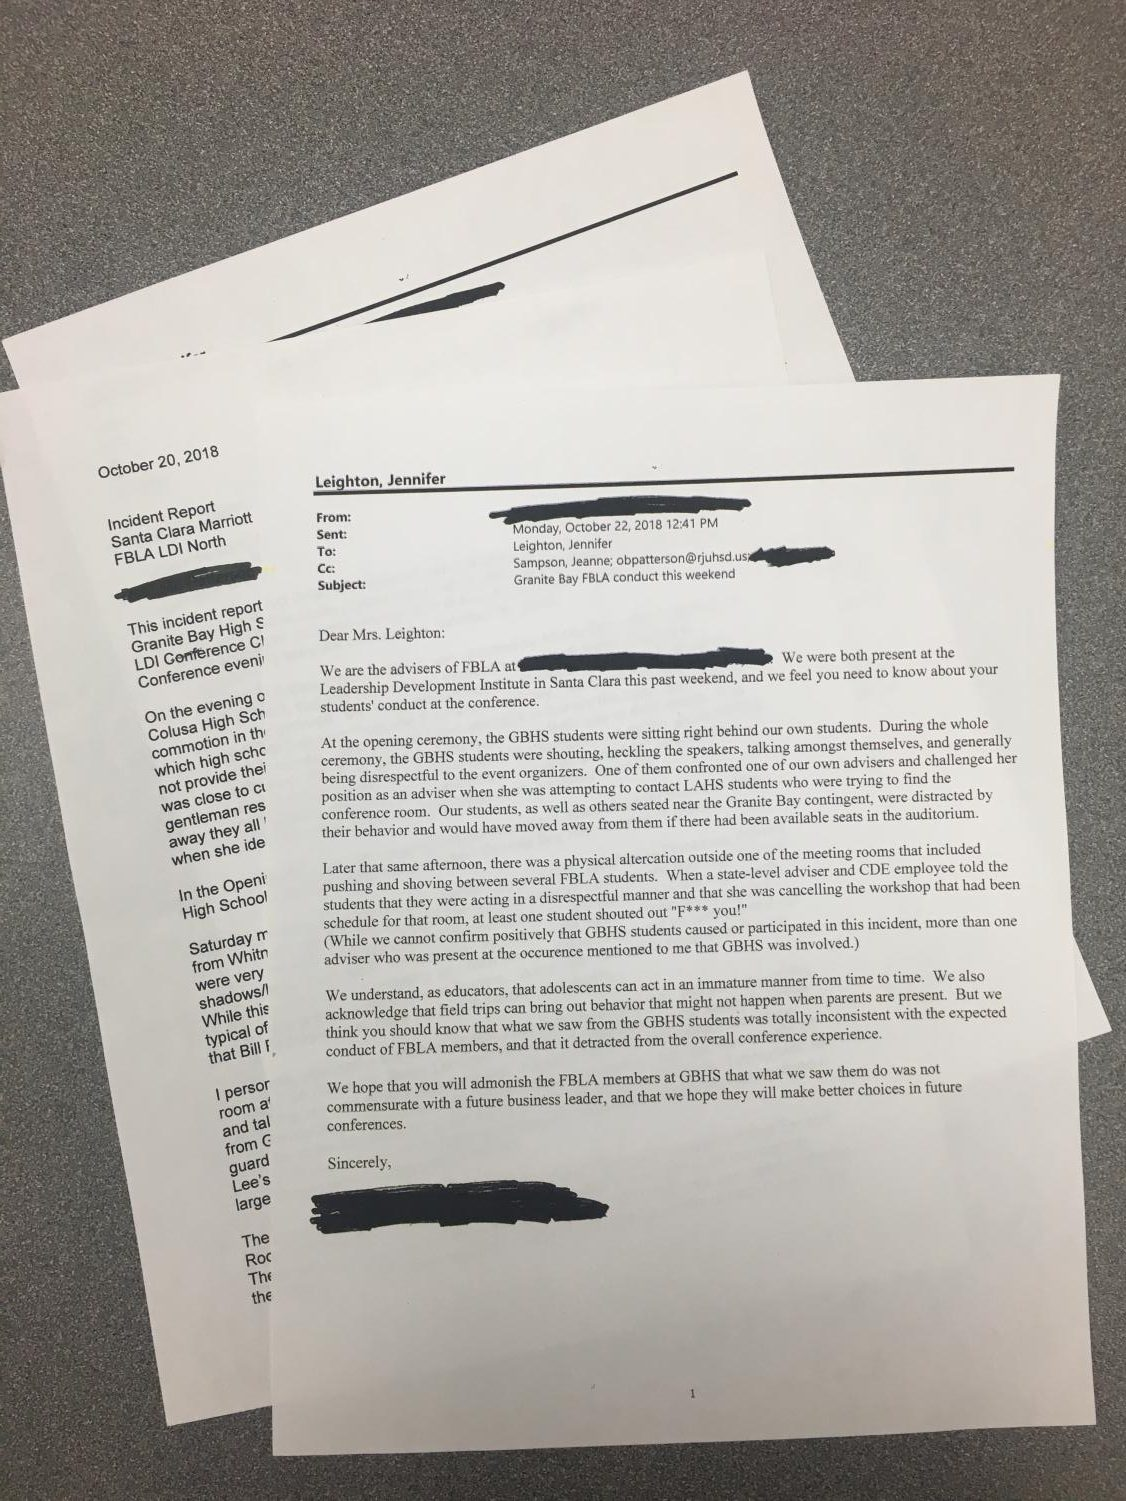 A California state department of education official collected evidence and statements about inappropriate conduct by Granite Bay High students at the state FBLA conference in October in Santa Clara. The information was then sent by the official to GBHS administration.  Administrators also received an email from another FBLA teacher/adviser that complained about GBHS student behavior. You can read the documents by clicking the link located down and to the left on this page.